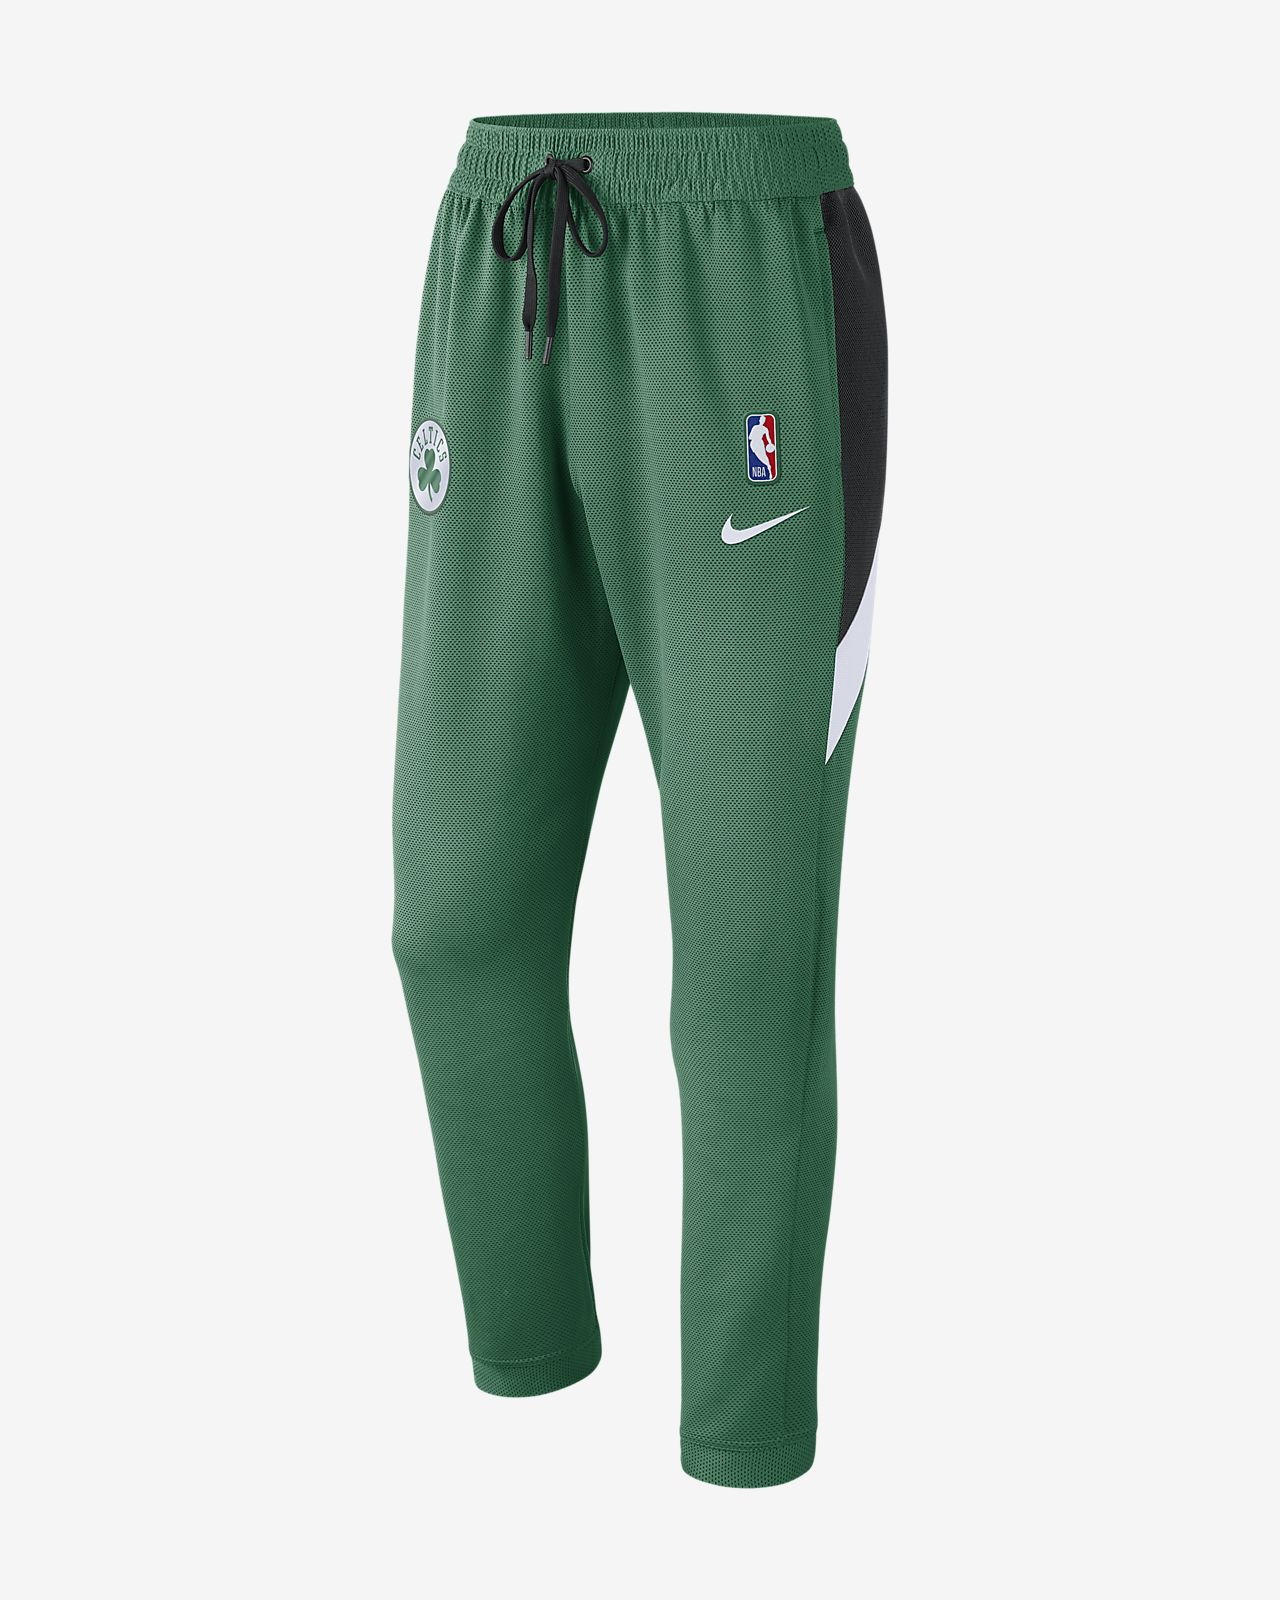 Boston Celtics Nike Therma Flex Showtime NBA-herenbroek